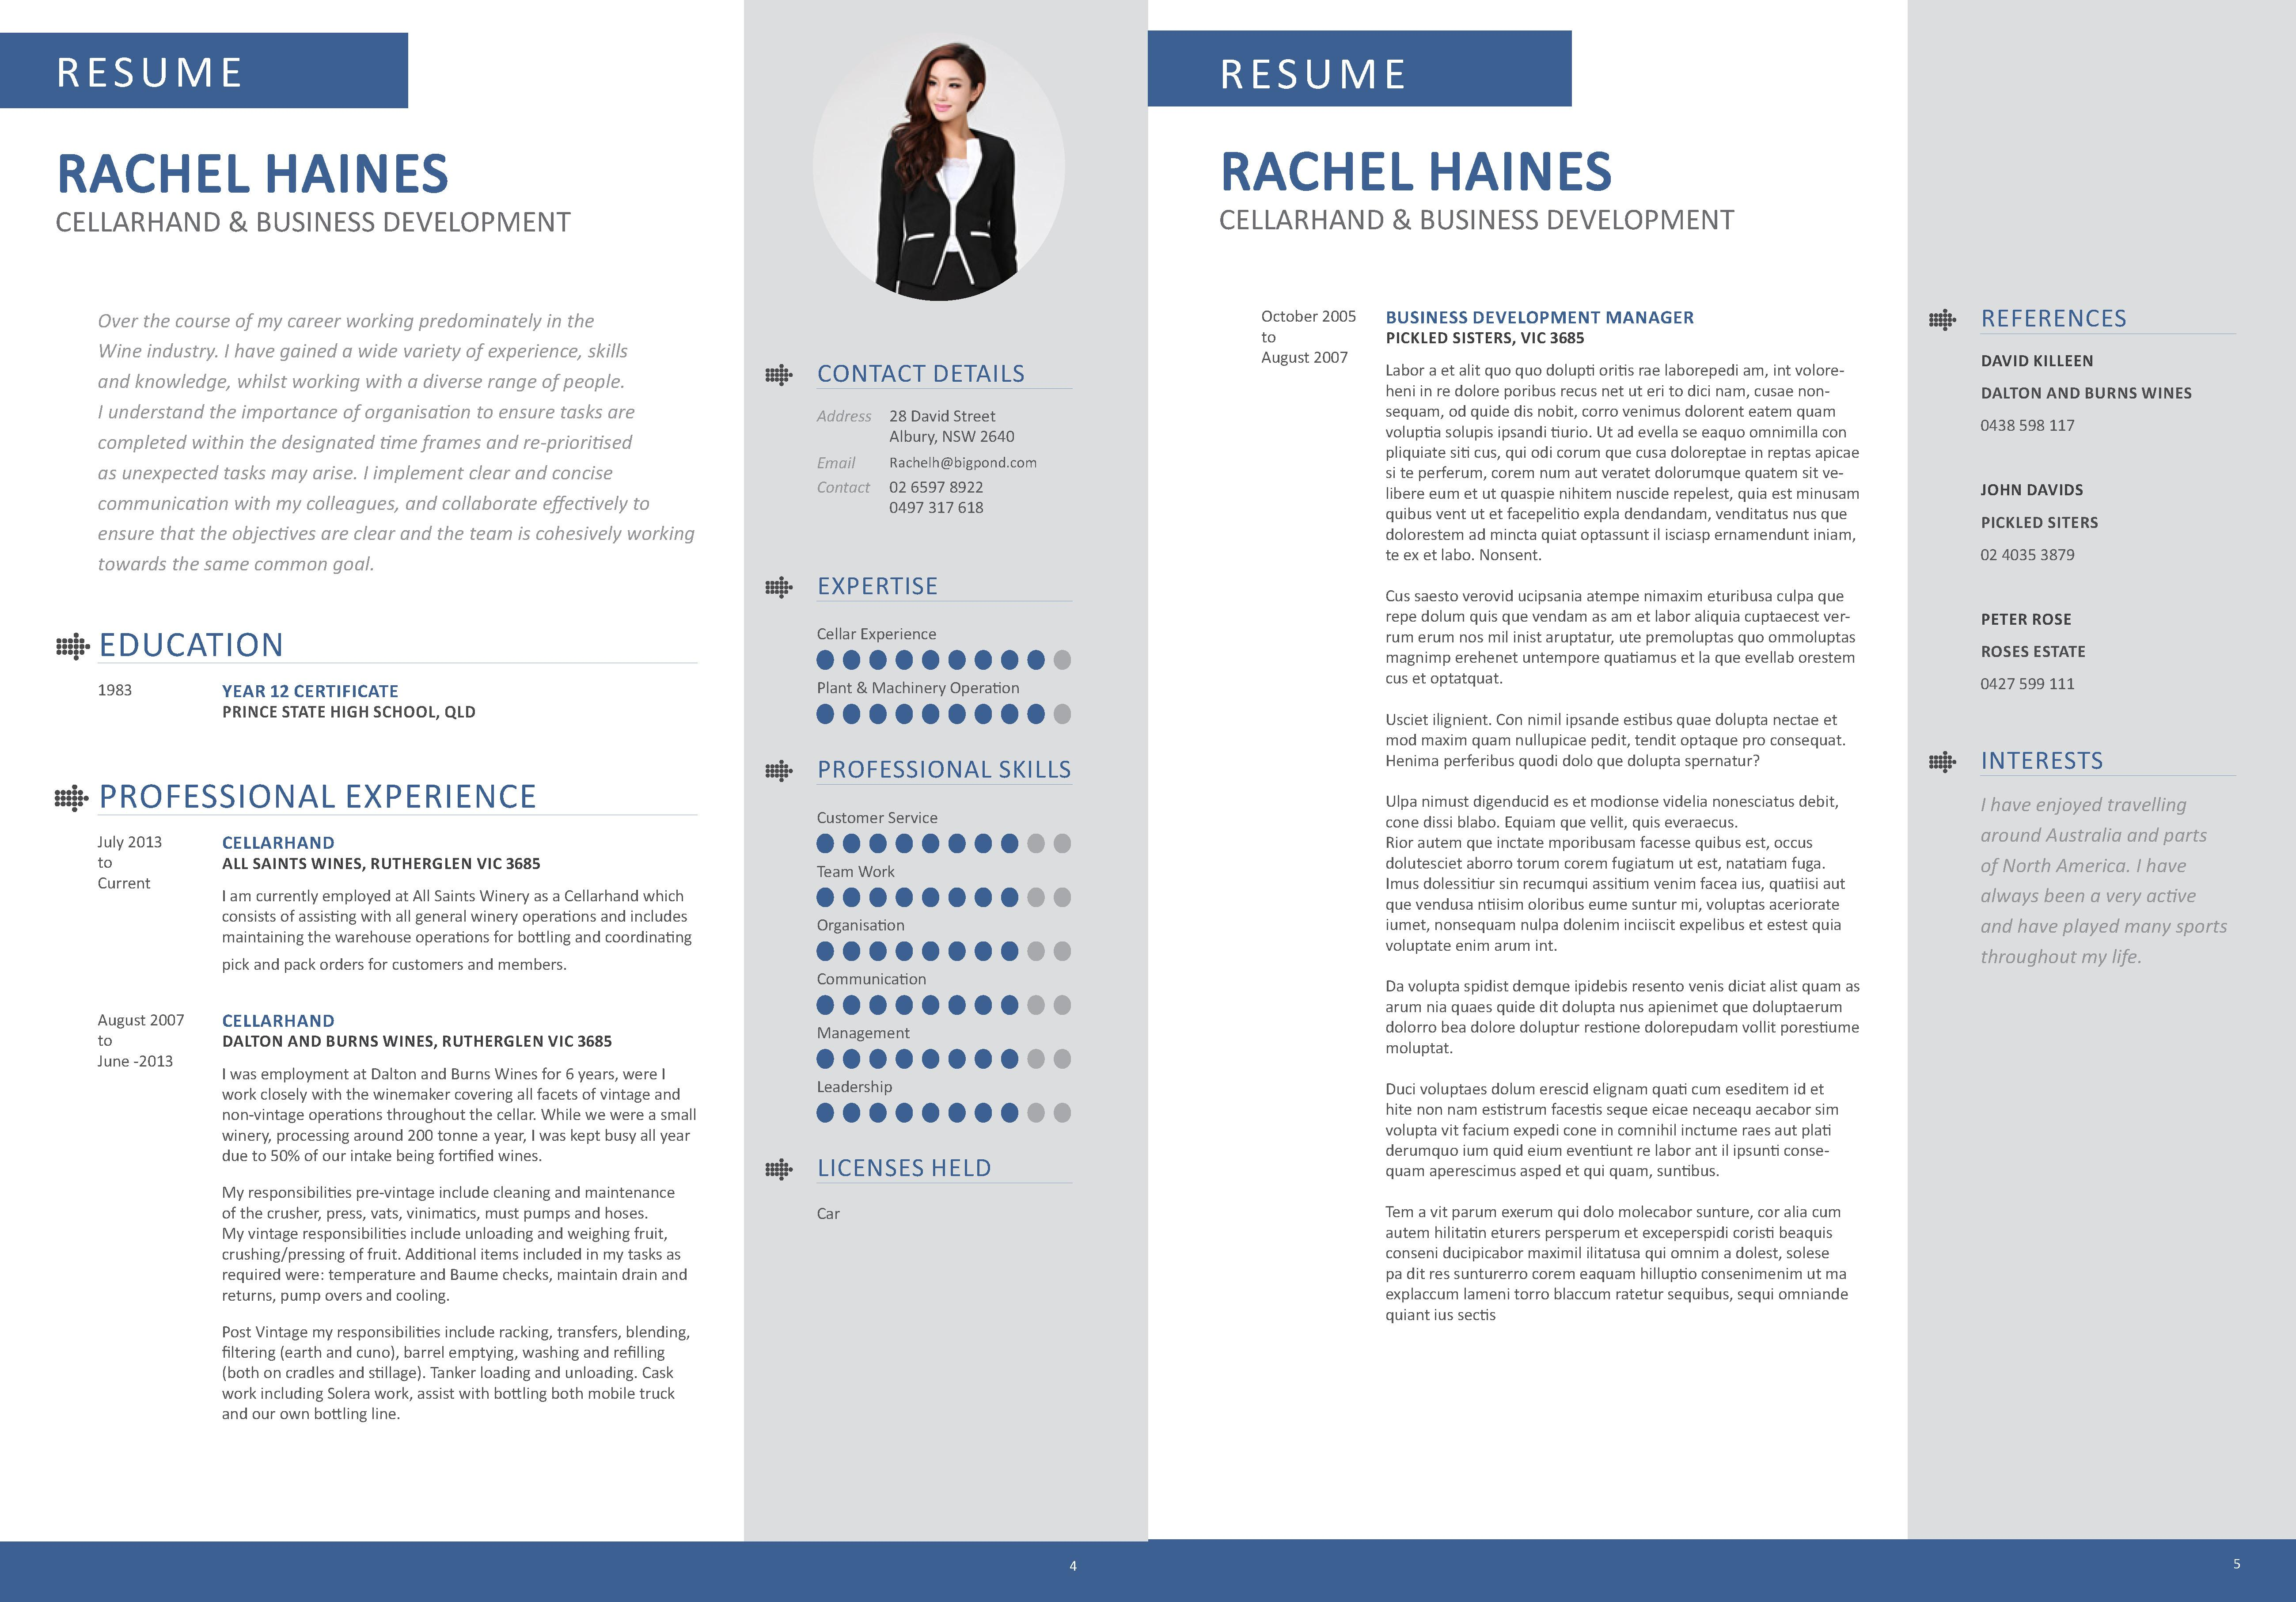 Restaurant Host Resume Objective Warehouse Work